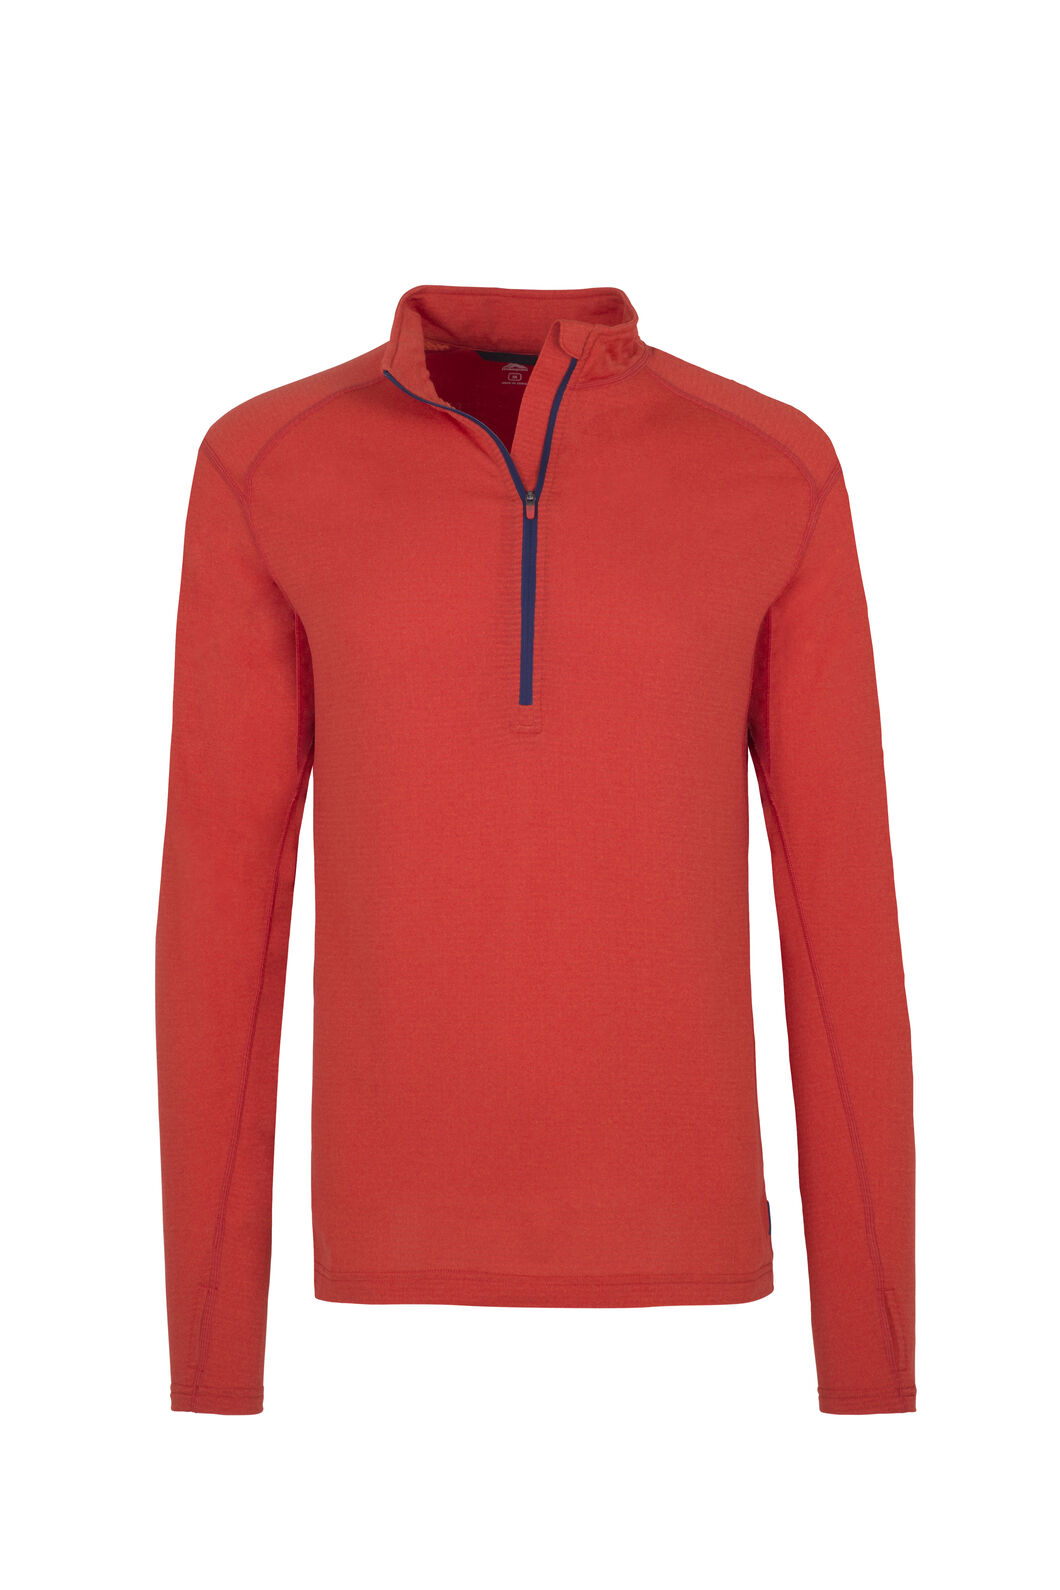 Macpac ProThermal Top - Men's, Molten Lava, hi-res